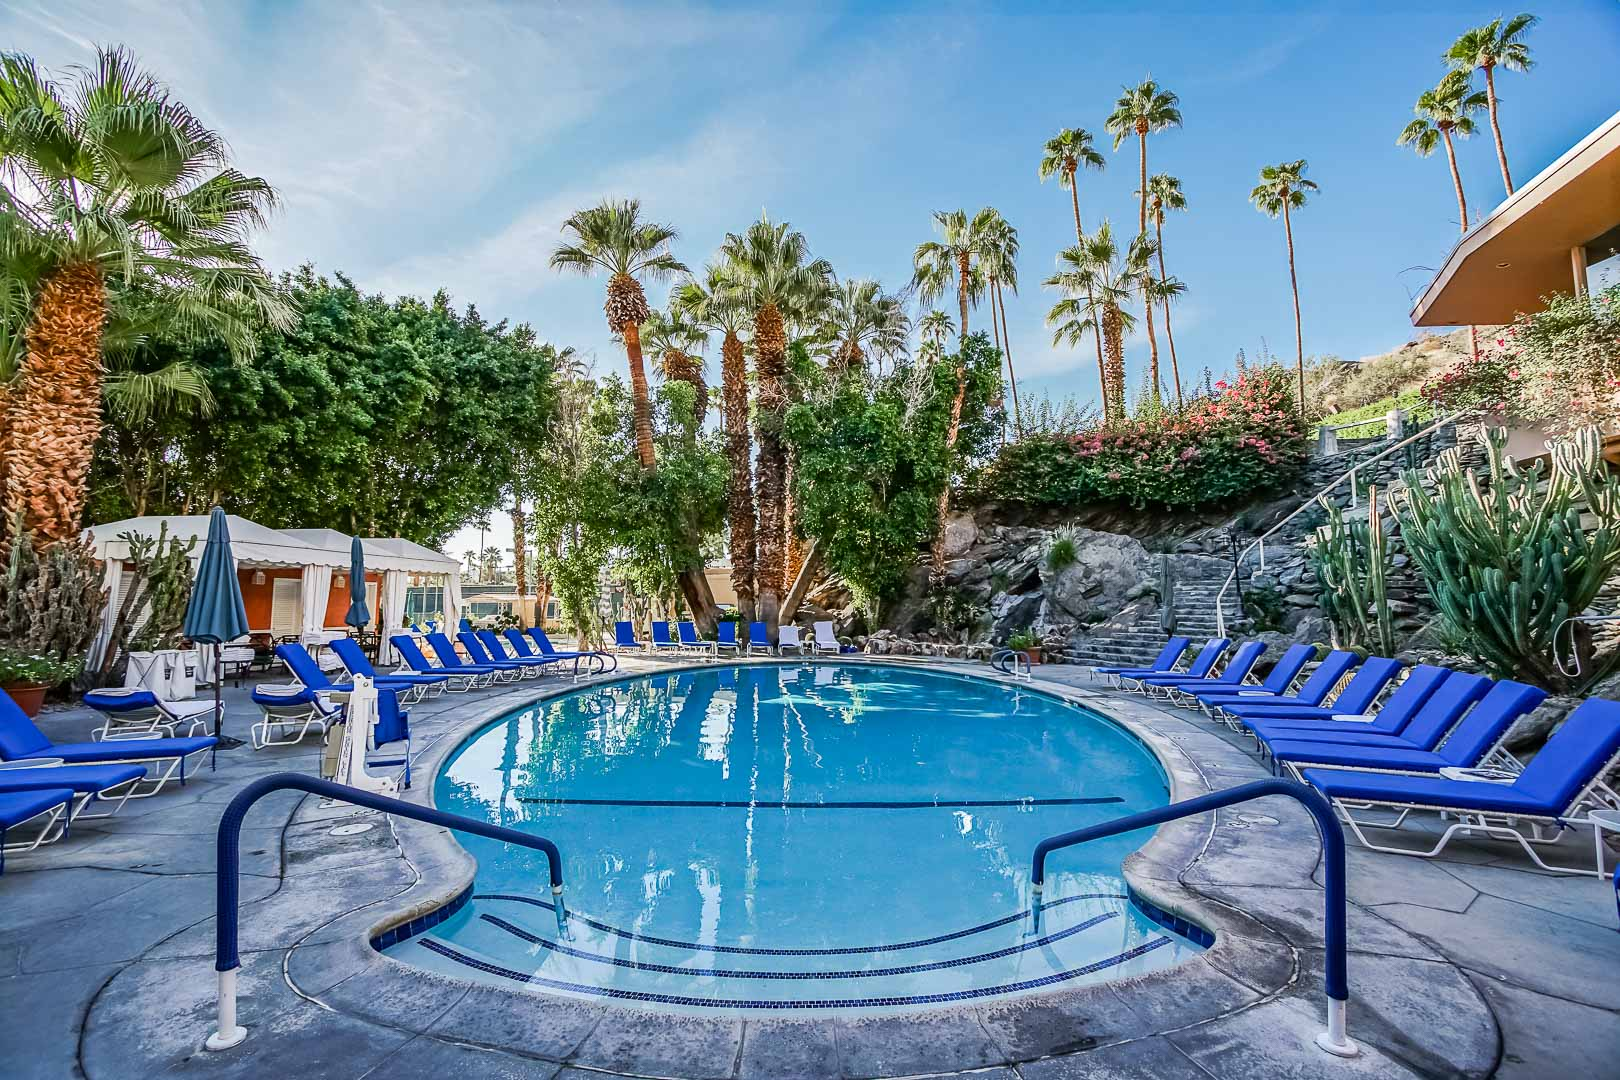 A peaceful view of the outdoor swimming pool at VRI's Palm Springs Tennis Club in California.